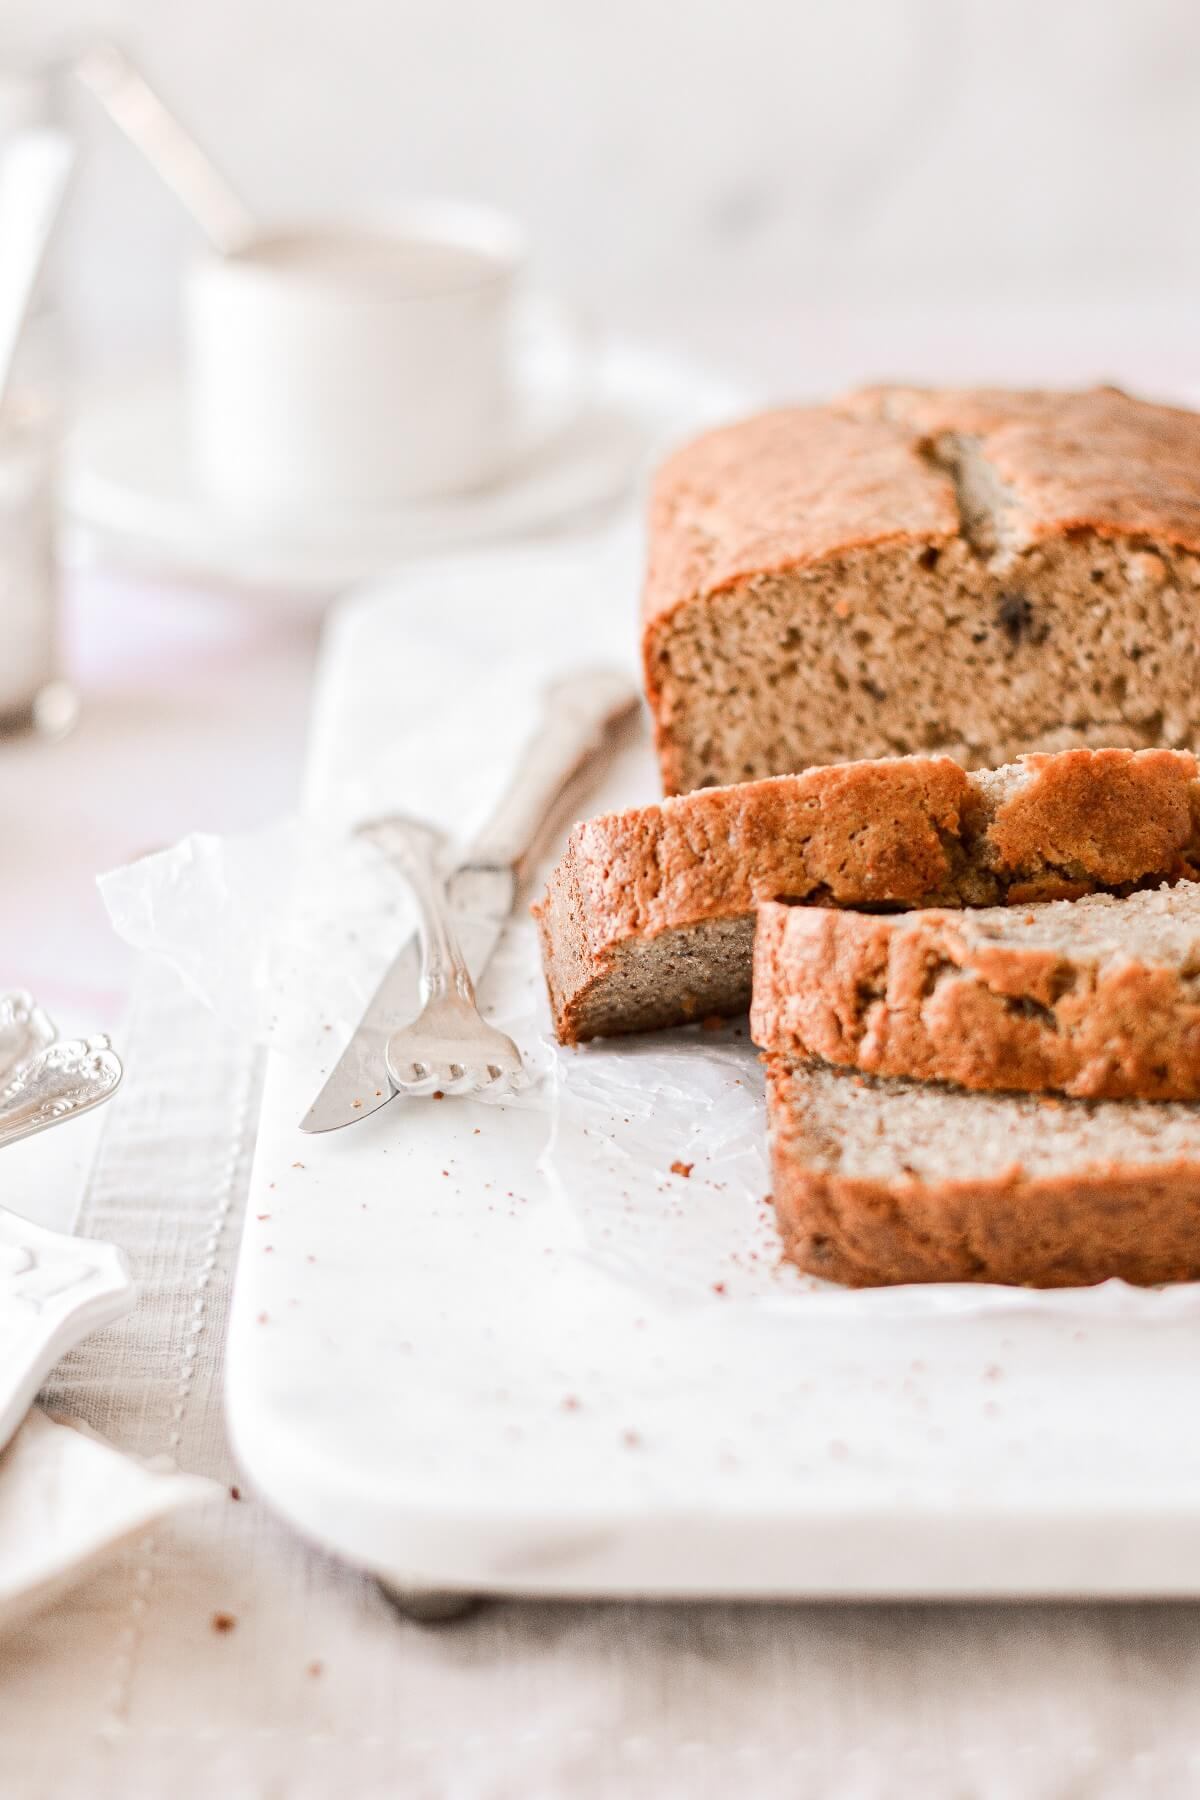 A loaf of banana bread cut into slices.